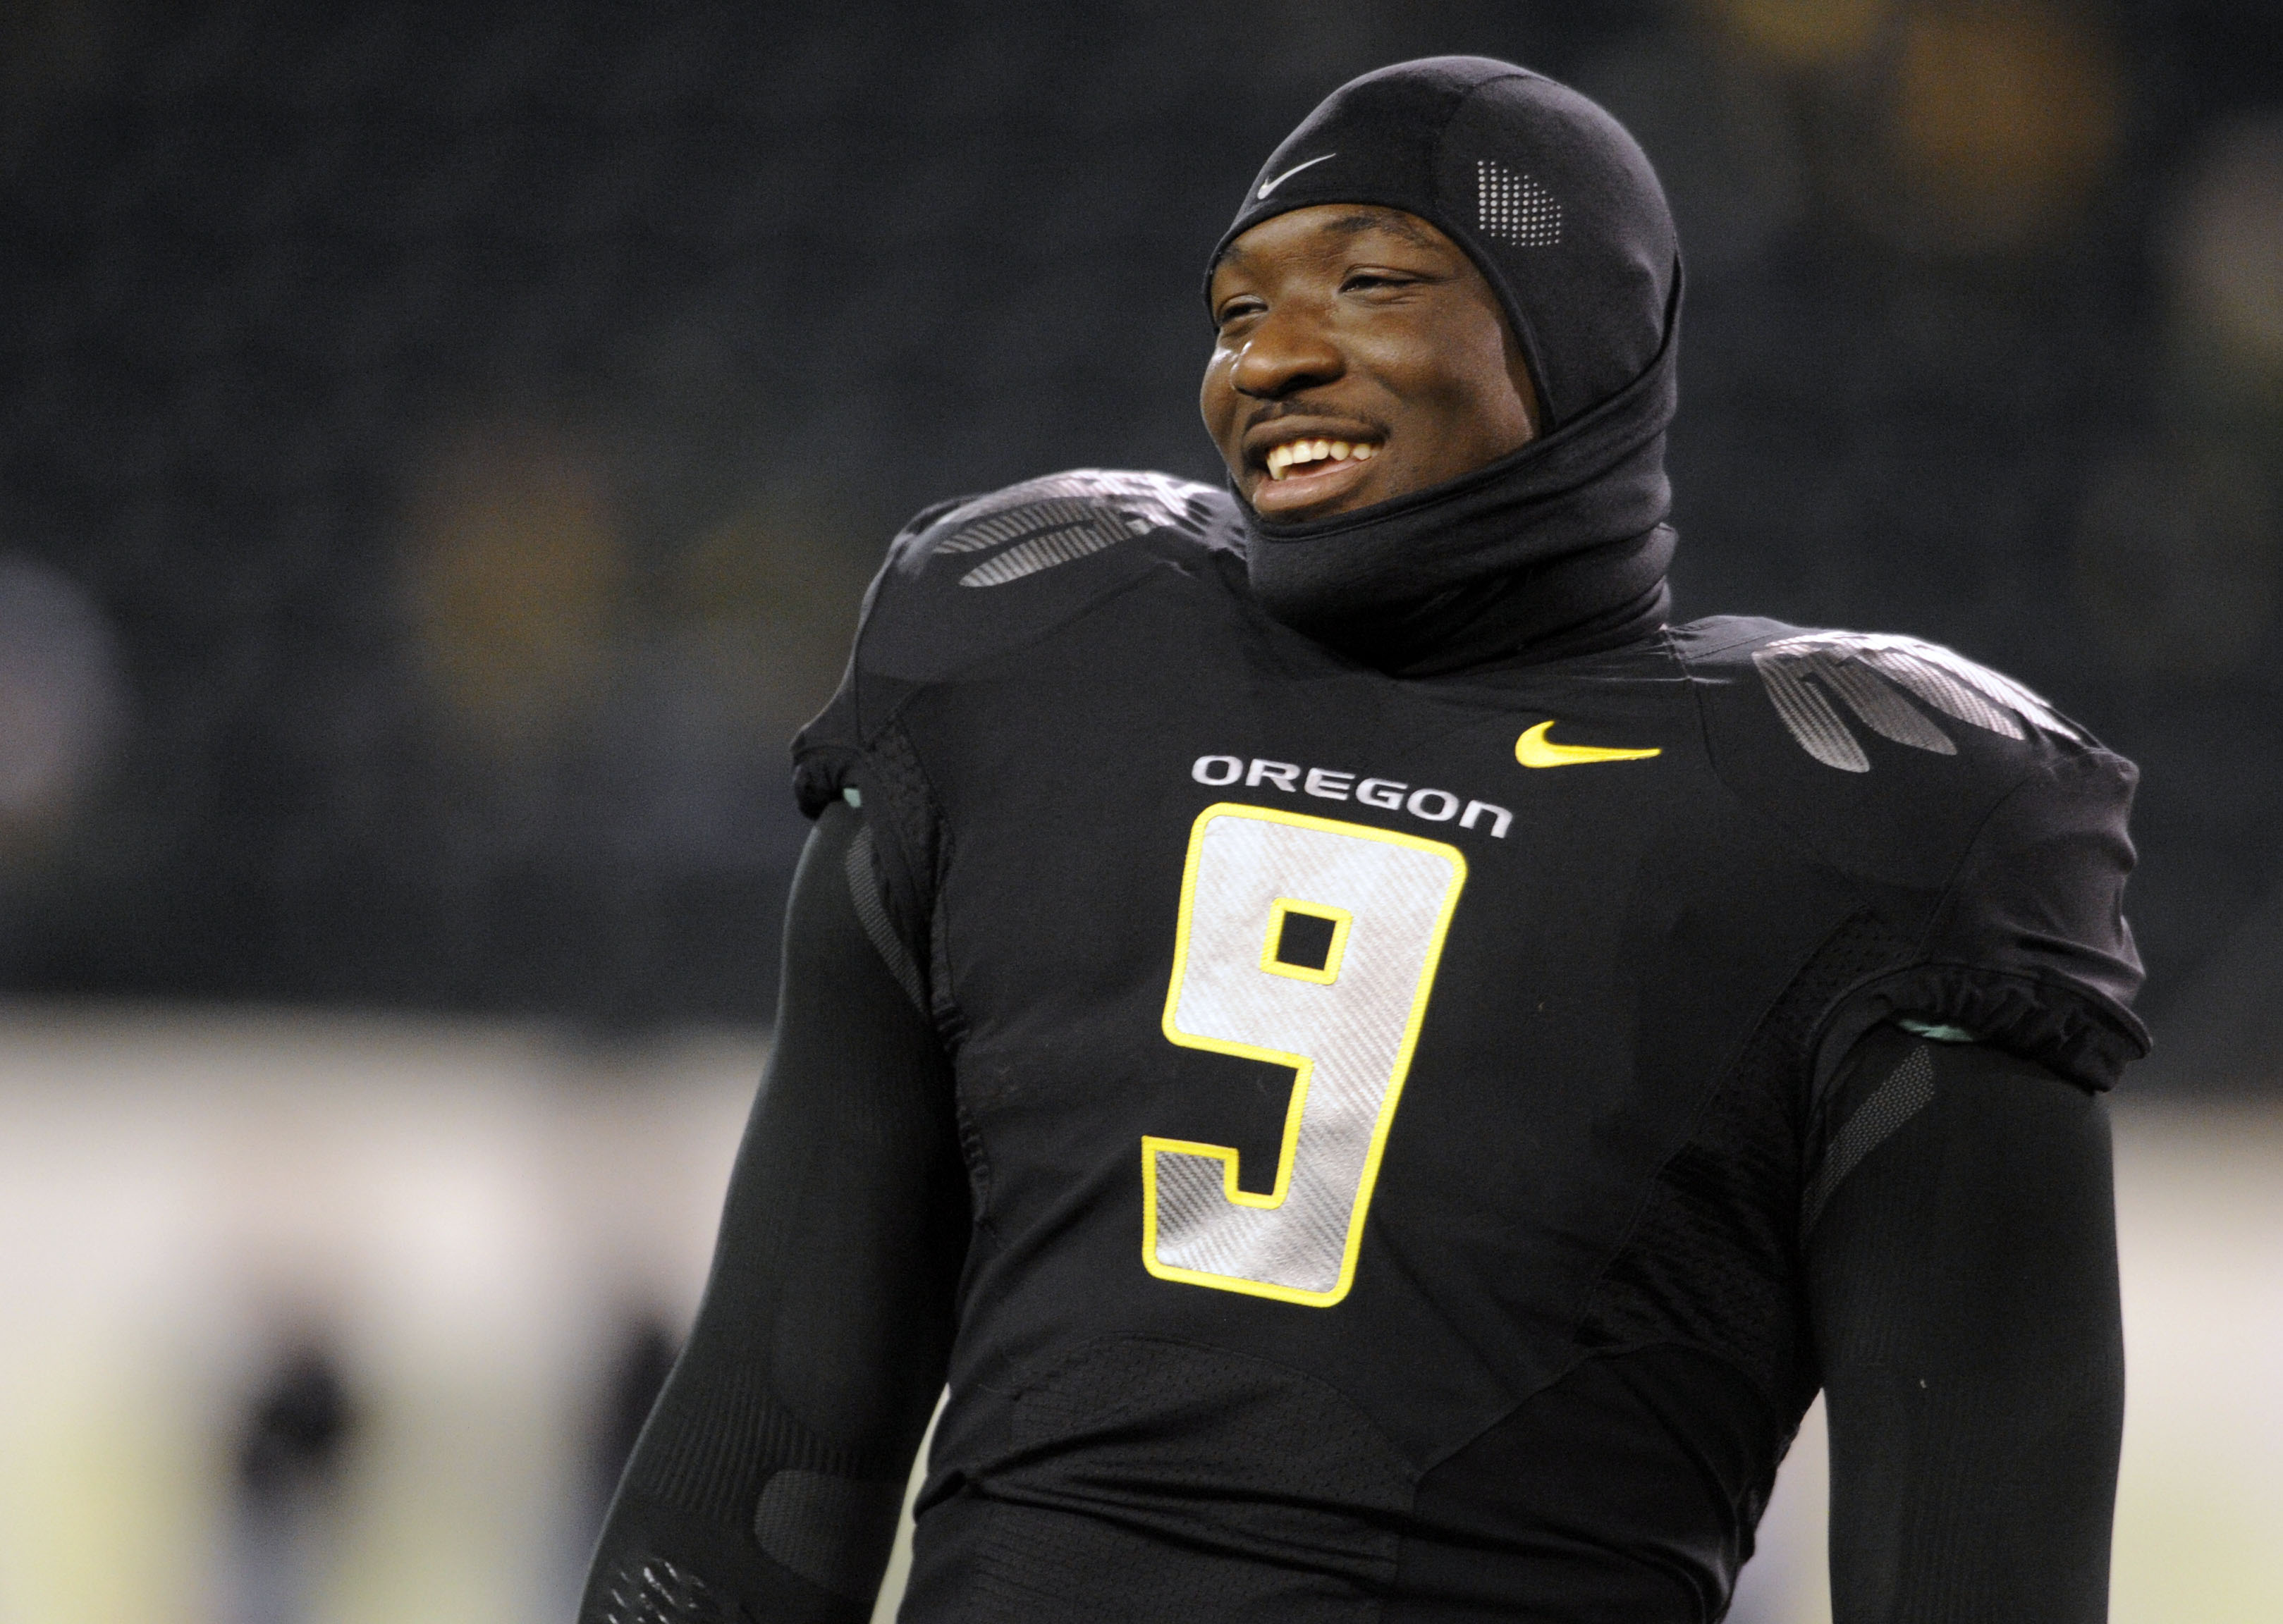 EUGENE,OR - NOVEMBER 14: Running back LeGarrette Blount #9 of the Oregon Ducks smiles as he warms up before the game against the Arizona State Sun Devils at Autzen Stadium on November 14, 2009 in Eugene, Oregon. (Photo by Steve Dykes/Getty Images)